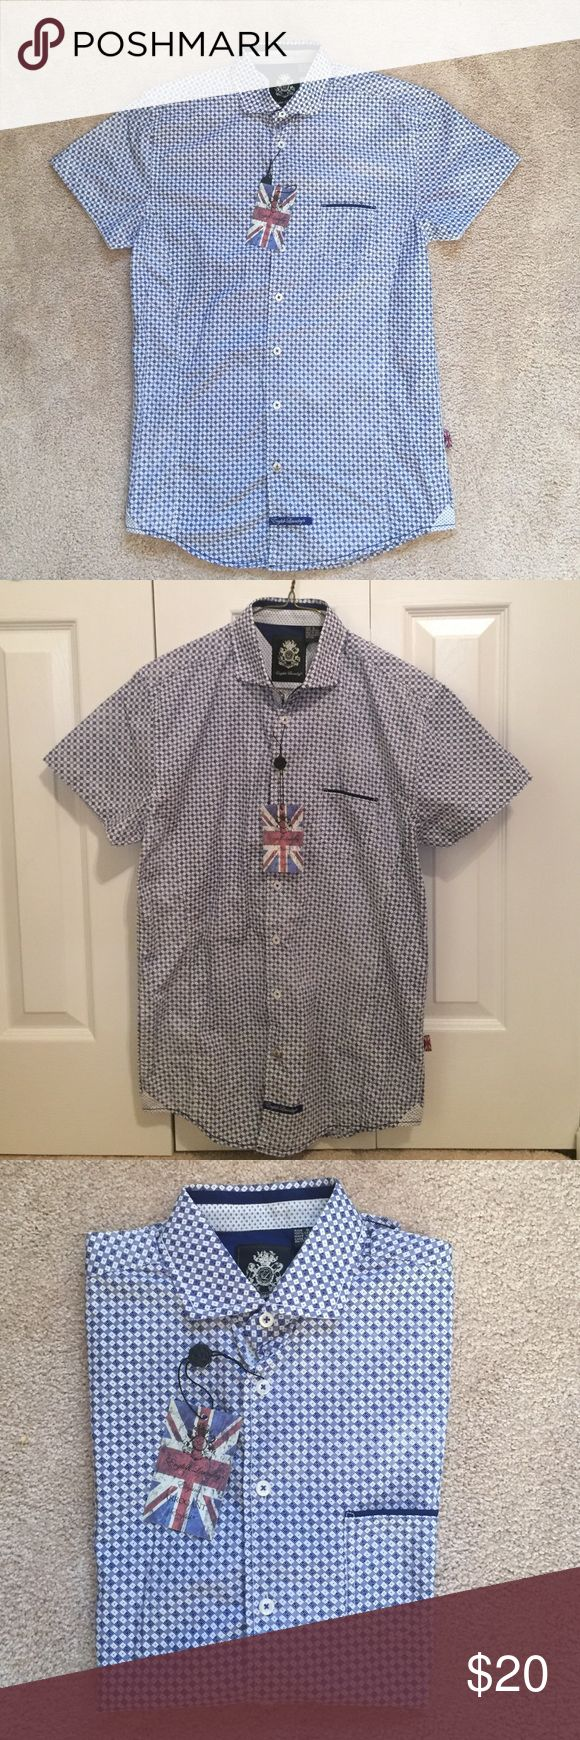 Men's Short Sleeve Dress Shirt This designer Dress Shirt is short sleeve and features a stunning pattern. Never been worn and NWT! Perfect for formal or casual occasions! English Laundry Shirts Casual Button Down Shirts